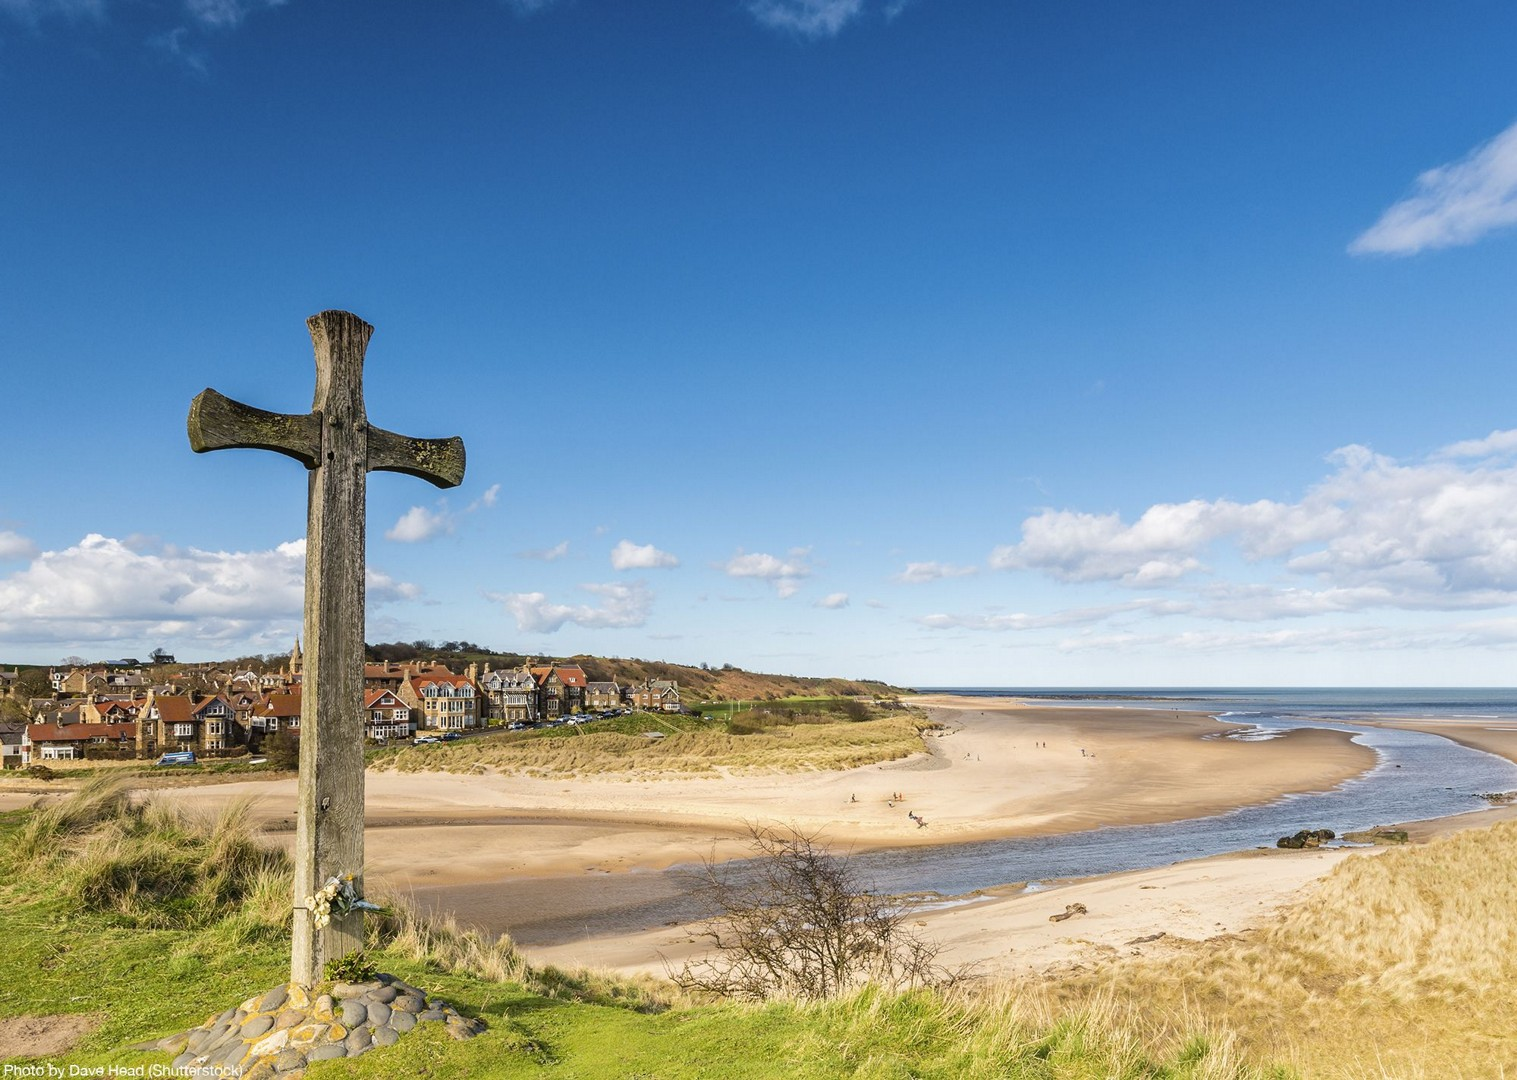 warkworth-beaches-cycling-holiday-bike-tour-self-guided-leisure-uk-england.jpg - UK - Coast and Castles - 4 Days Cycling - Self-Guided Leisure Cycling Holiday - Leisure Cycling